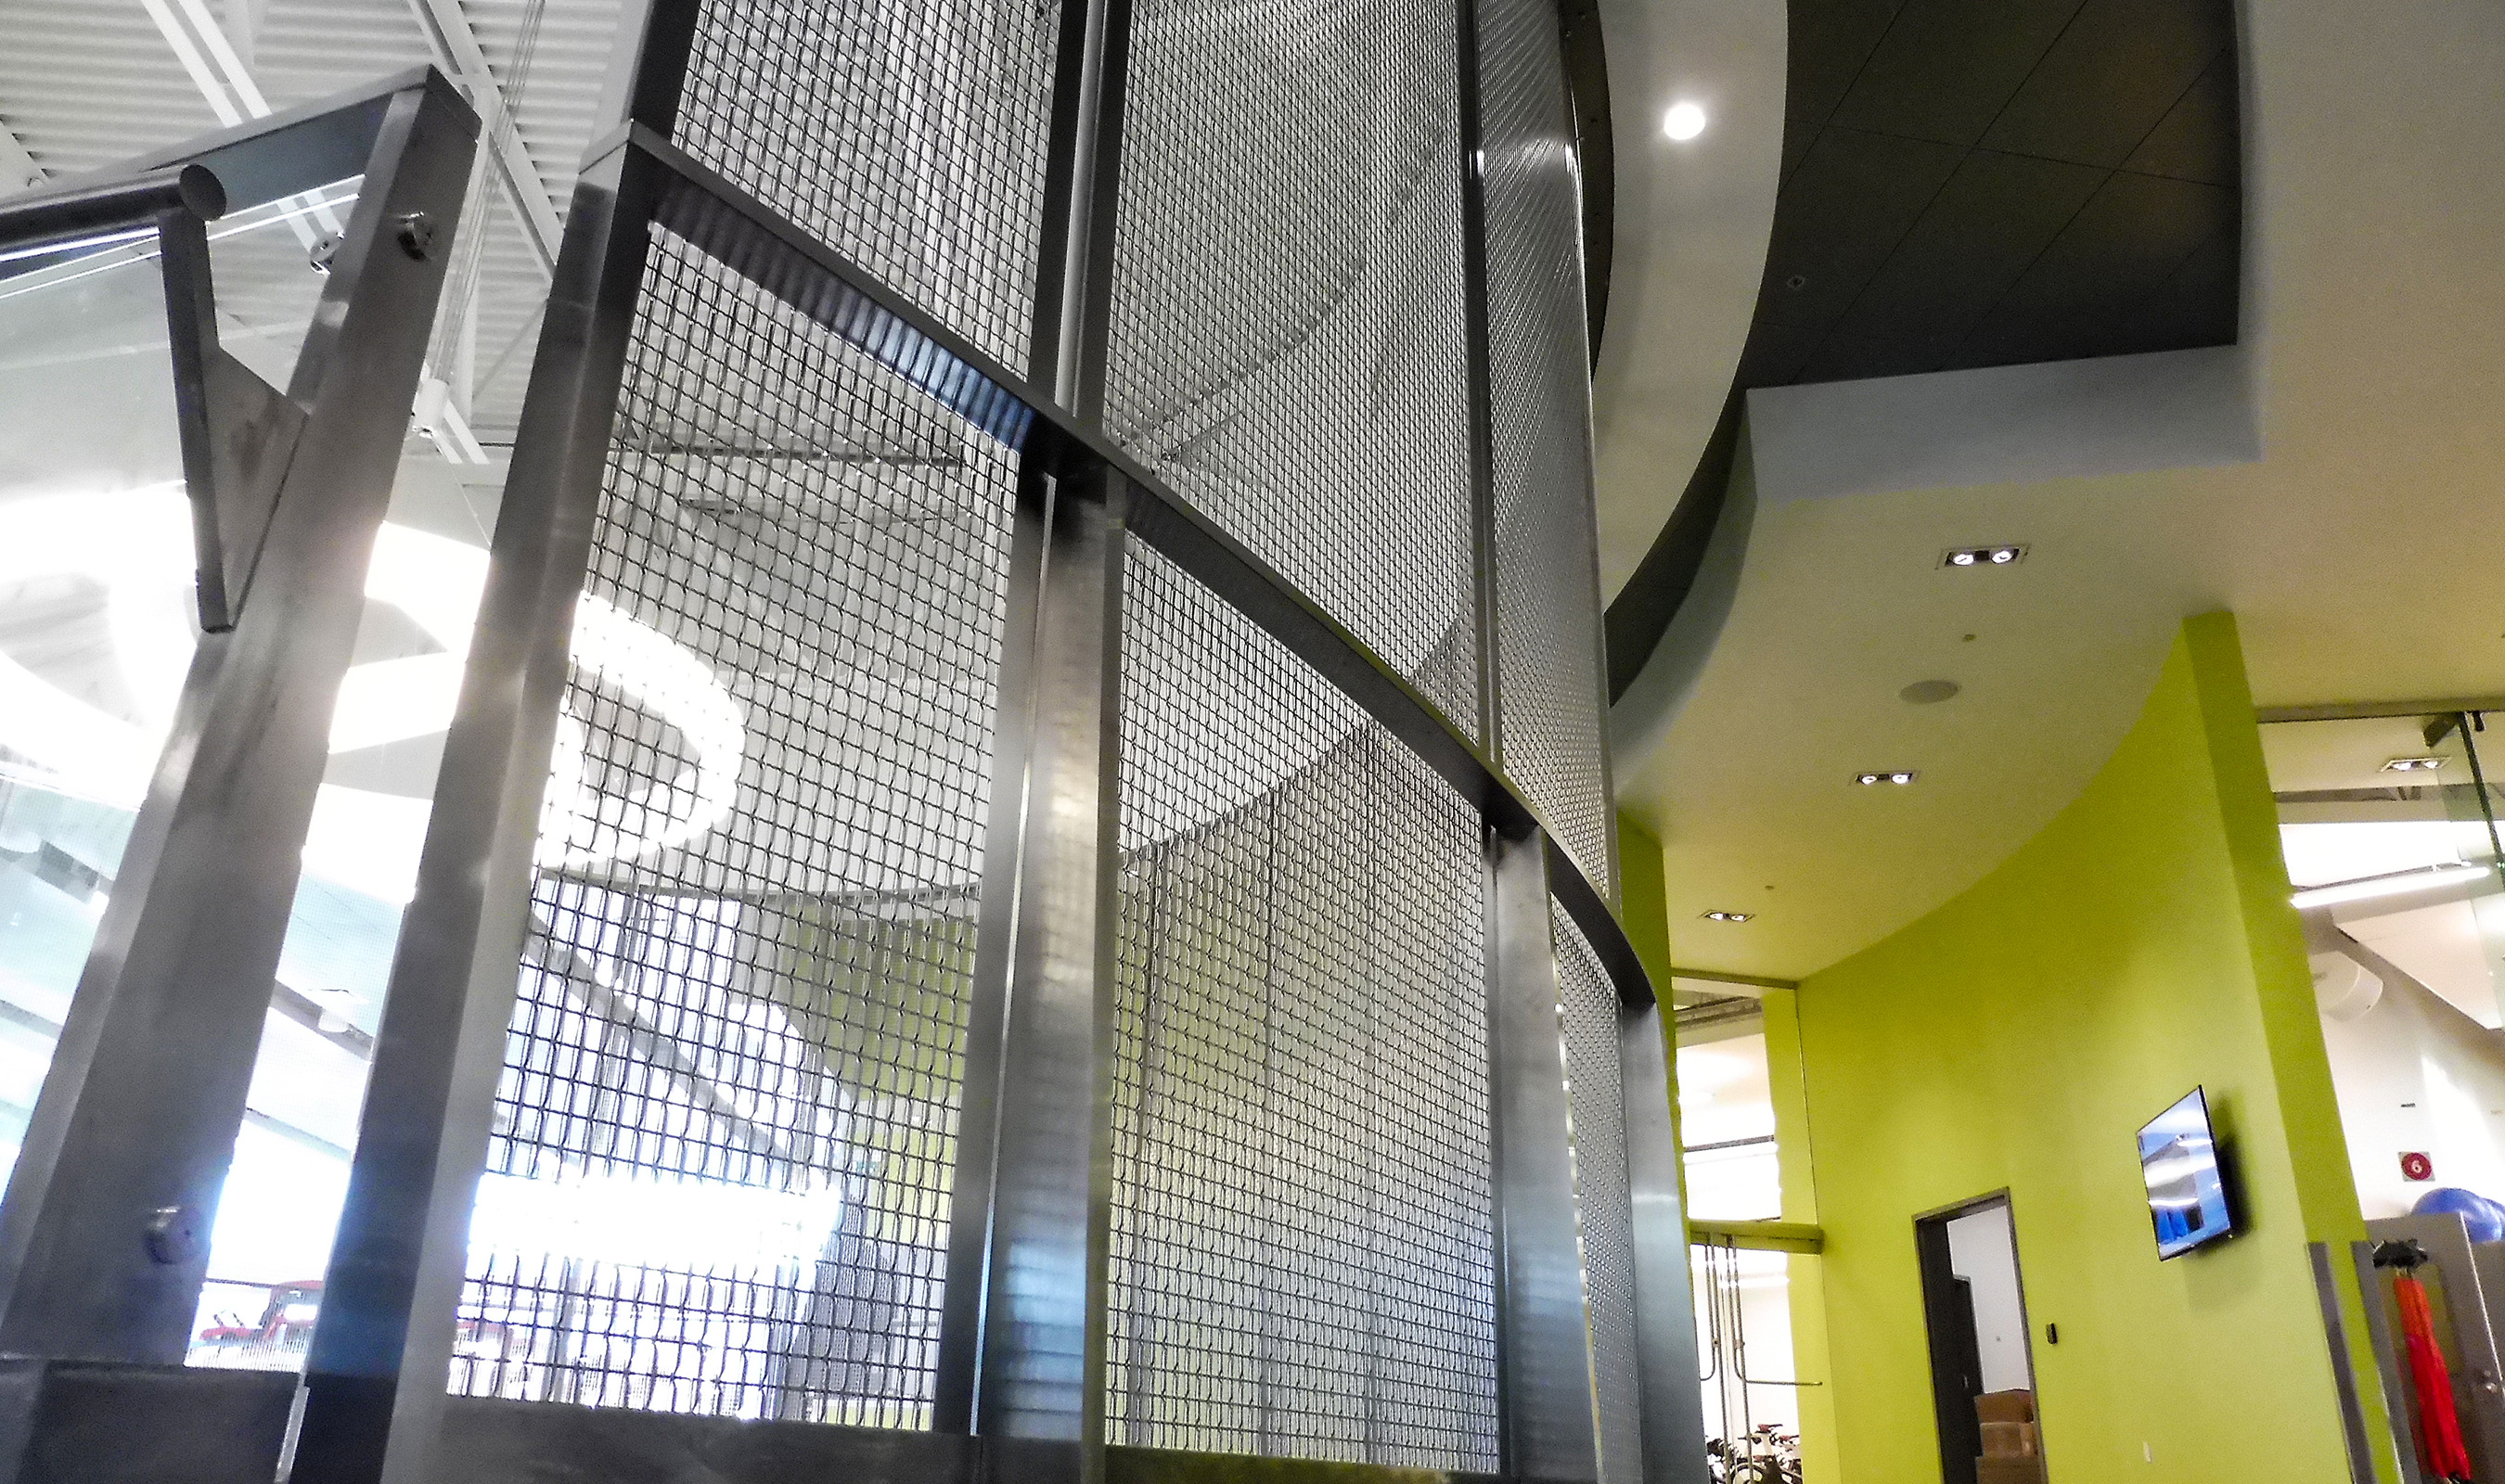 The visual texture that Banker Wire's SJD-7 woven wire mesh add to a space give a unique and modern appearance.